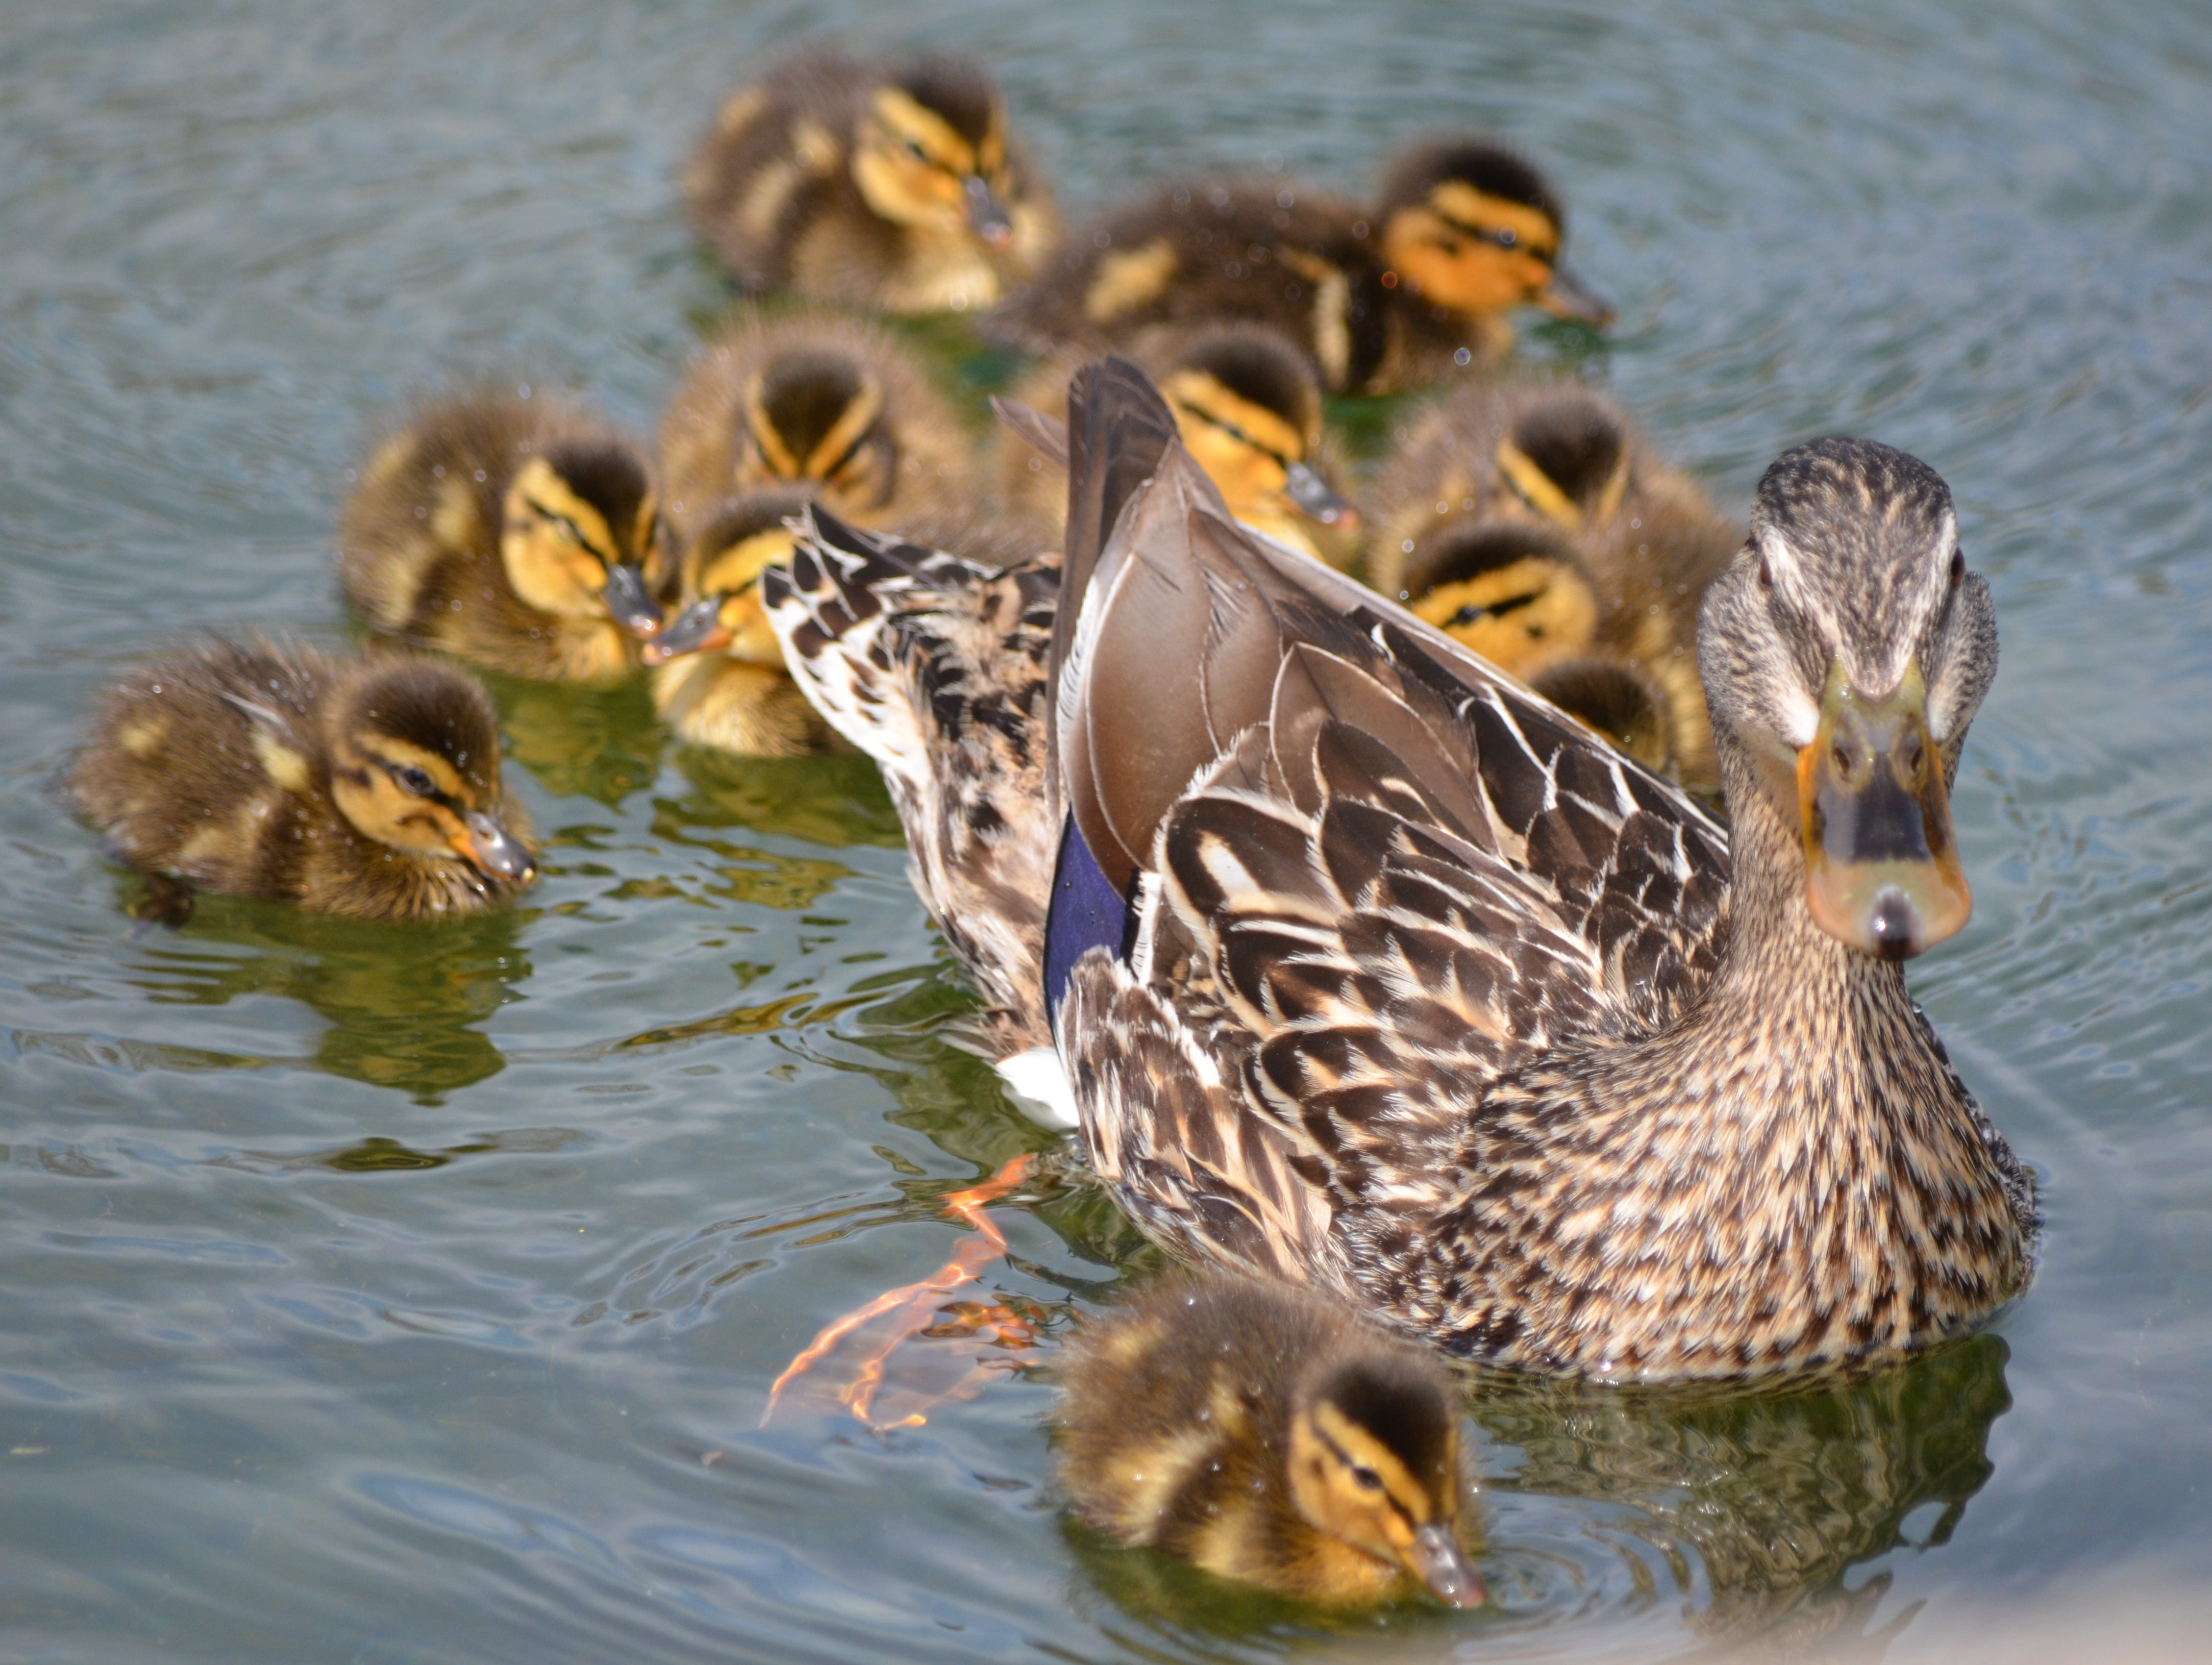 Juvenile Mallards with their mother.